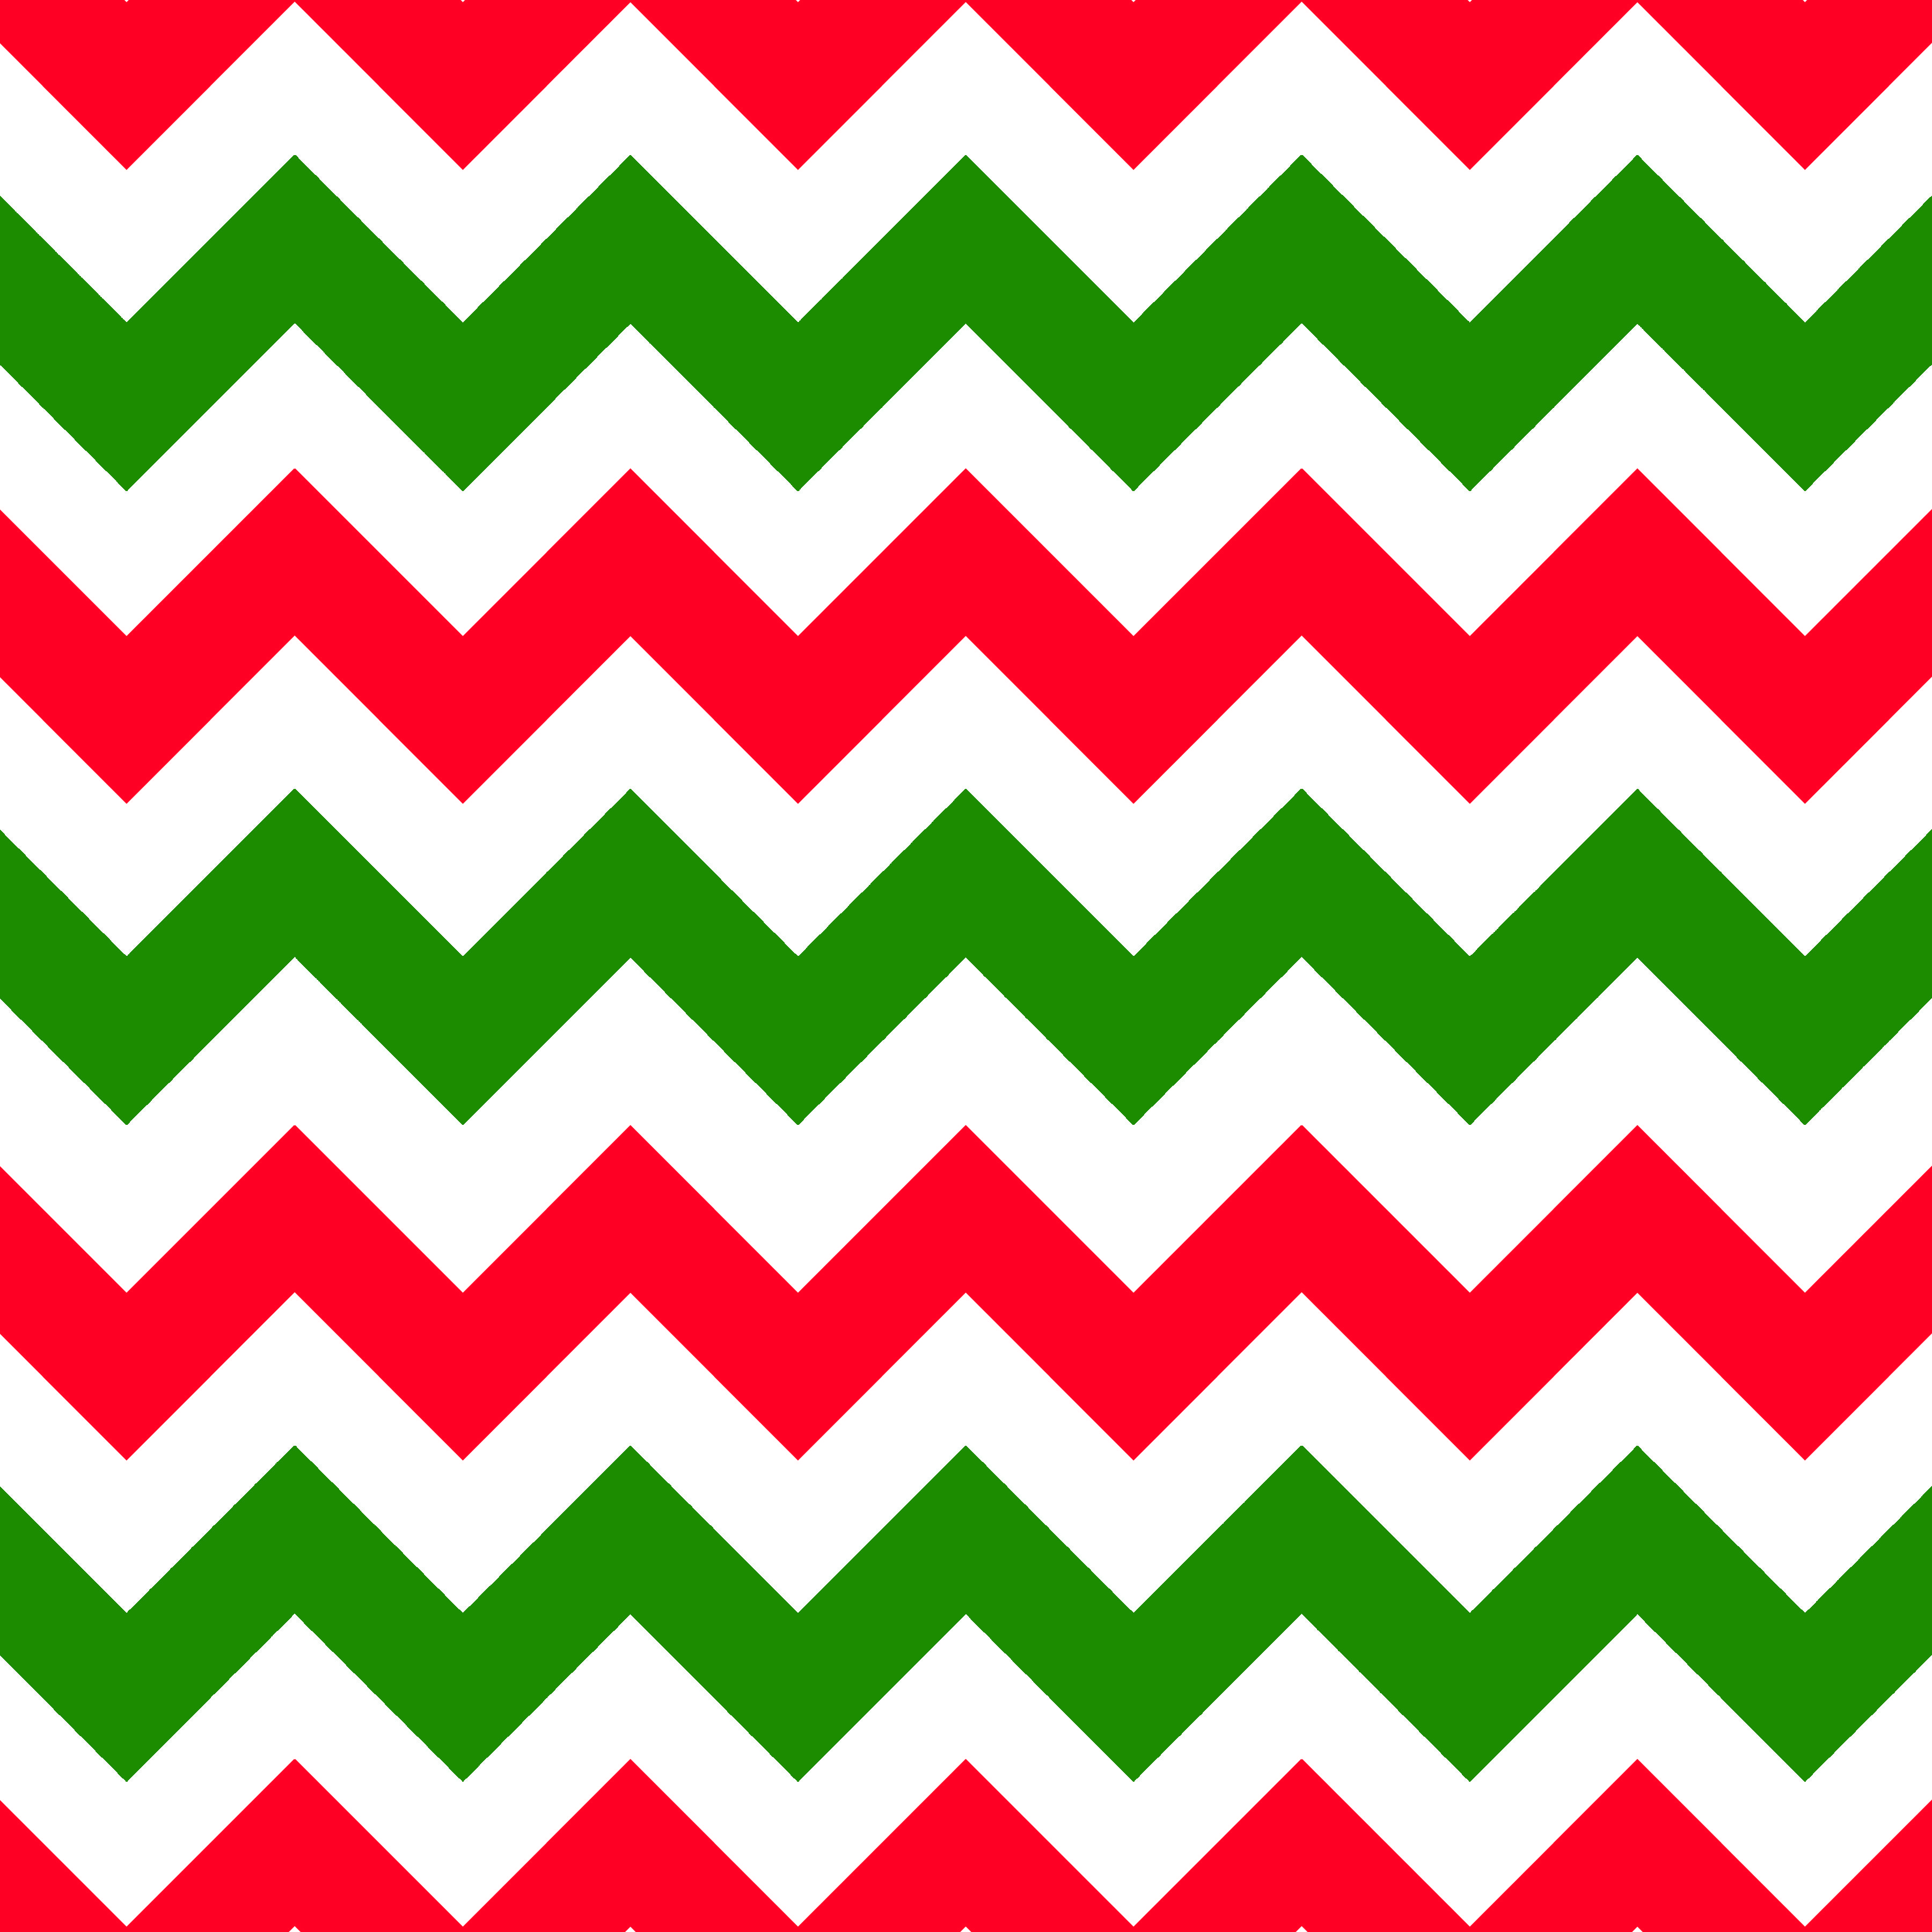 Chevron clipart maroon. Red and green background